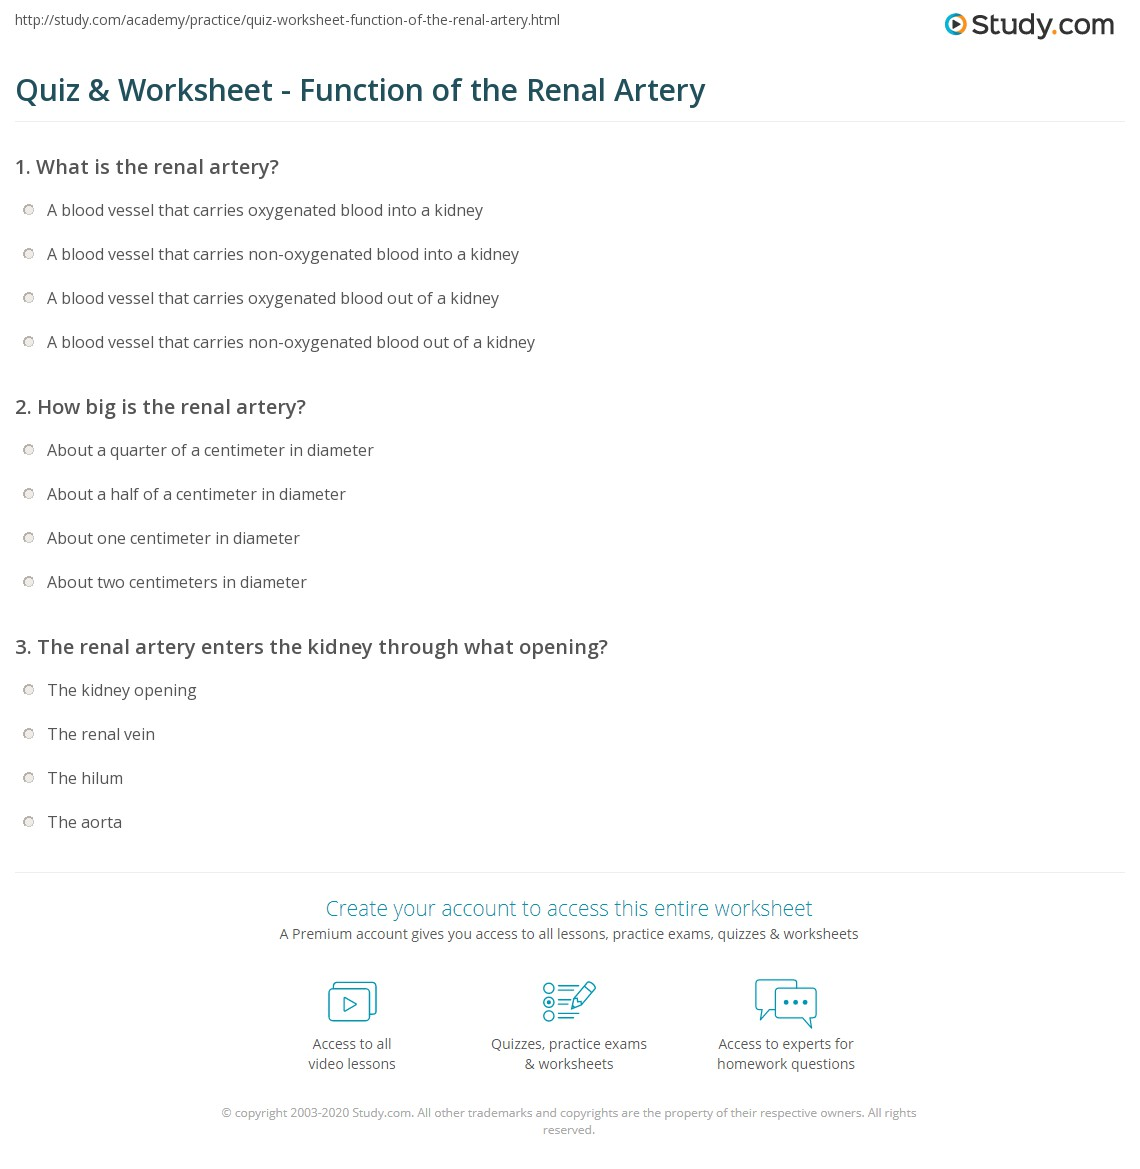 quiz worksheet function of the renal artery study com